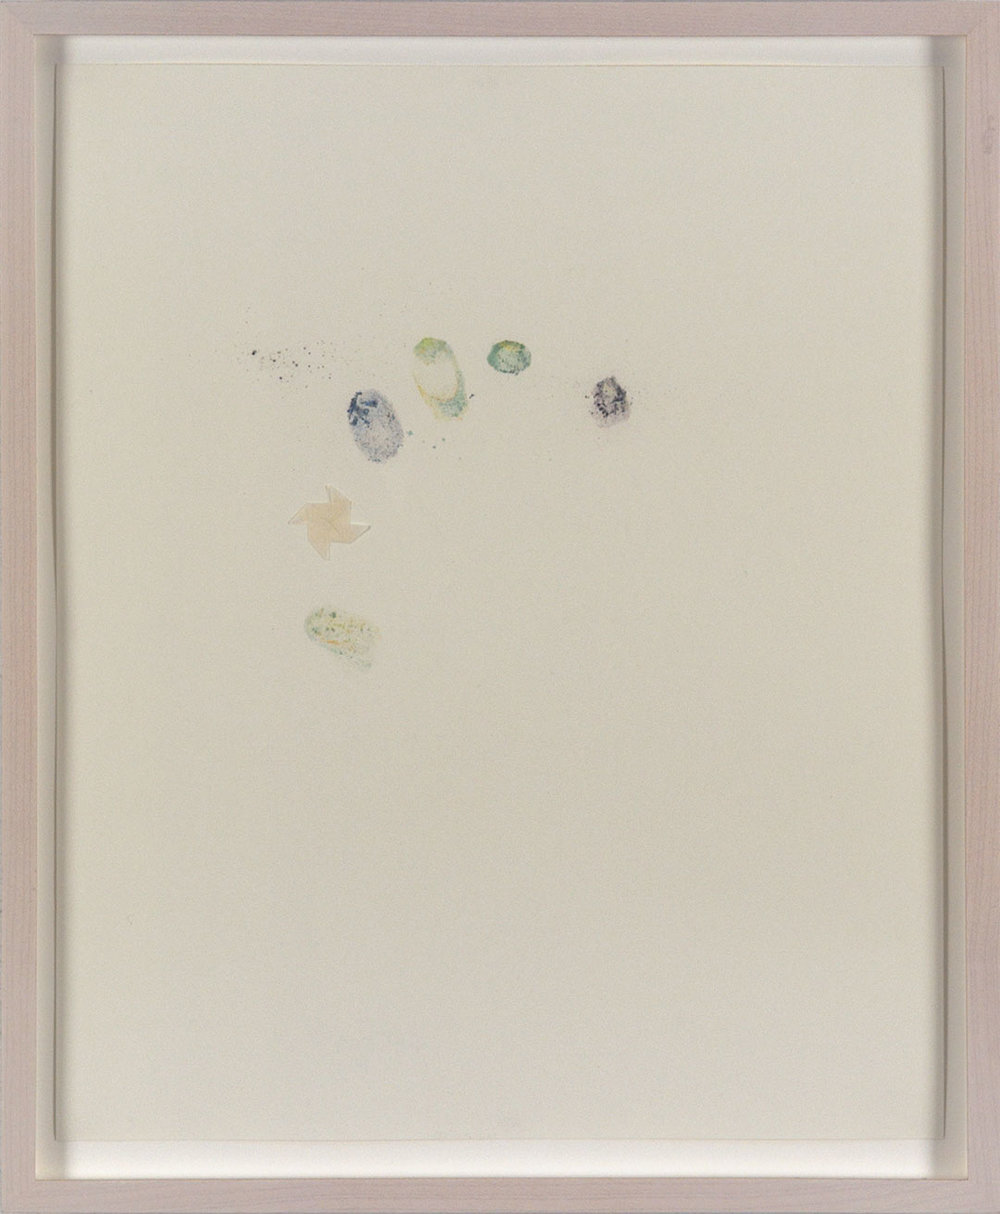 "Self 10, 2005, dry pastel pigment and tracing paper on Strathmore paper. Framed 12.25 x H15"" x D0.5""."